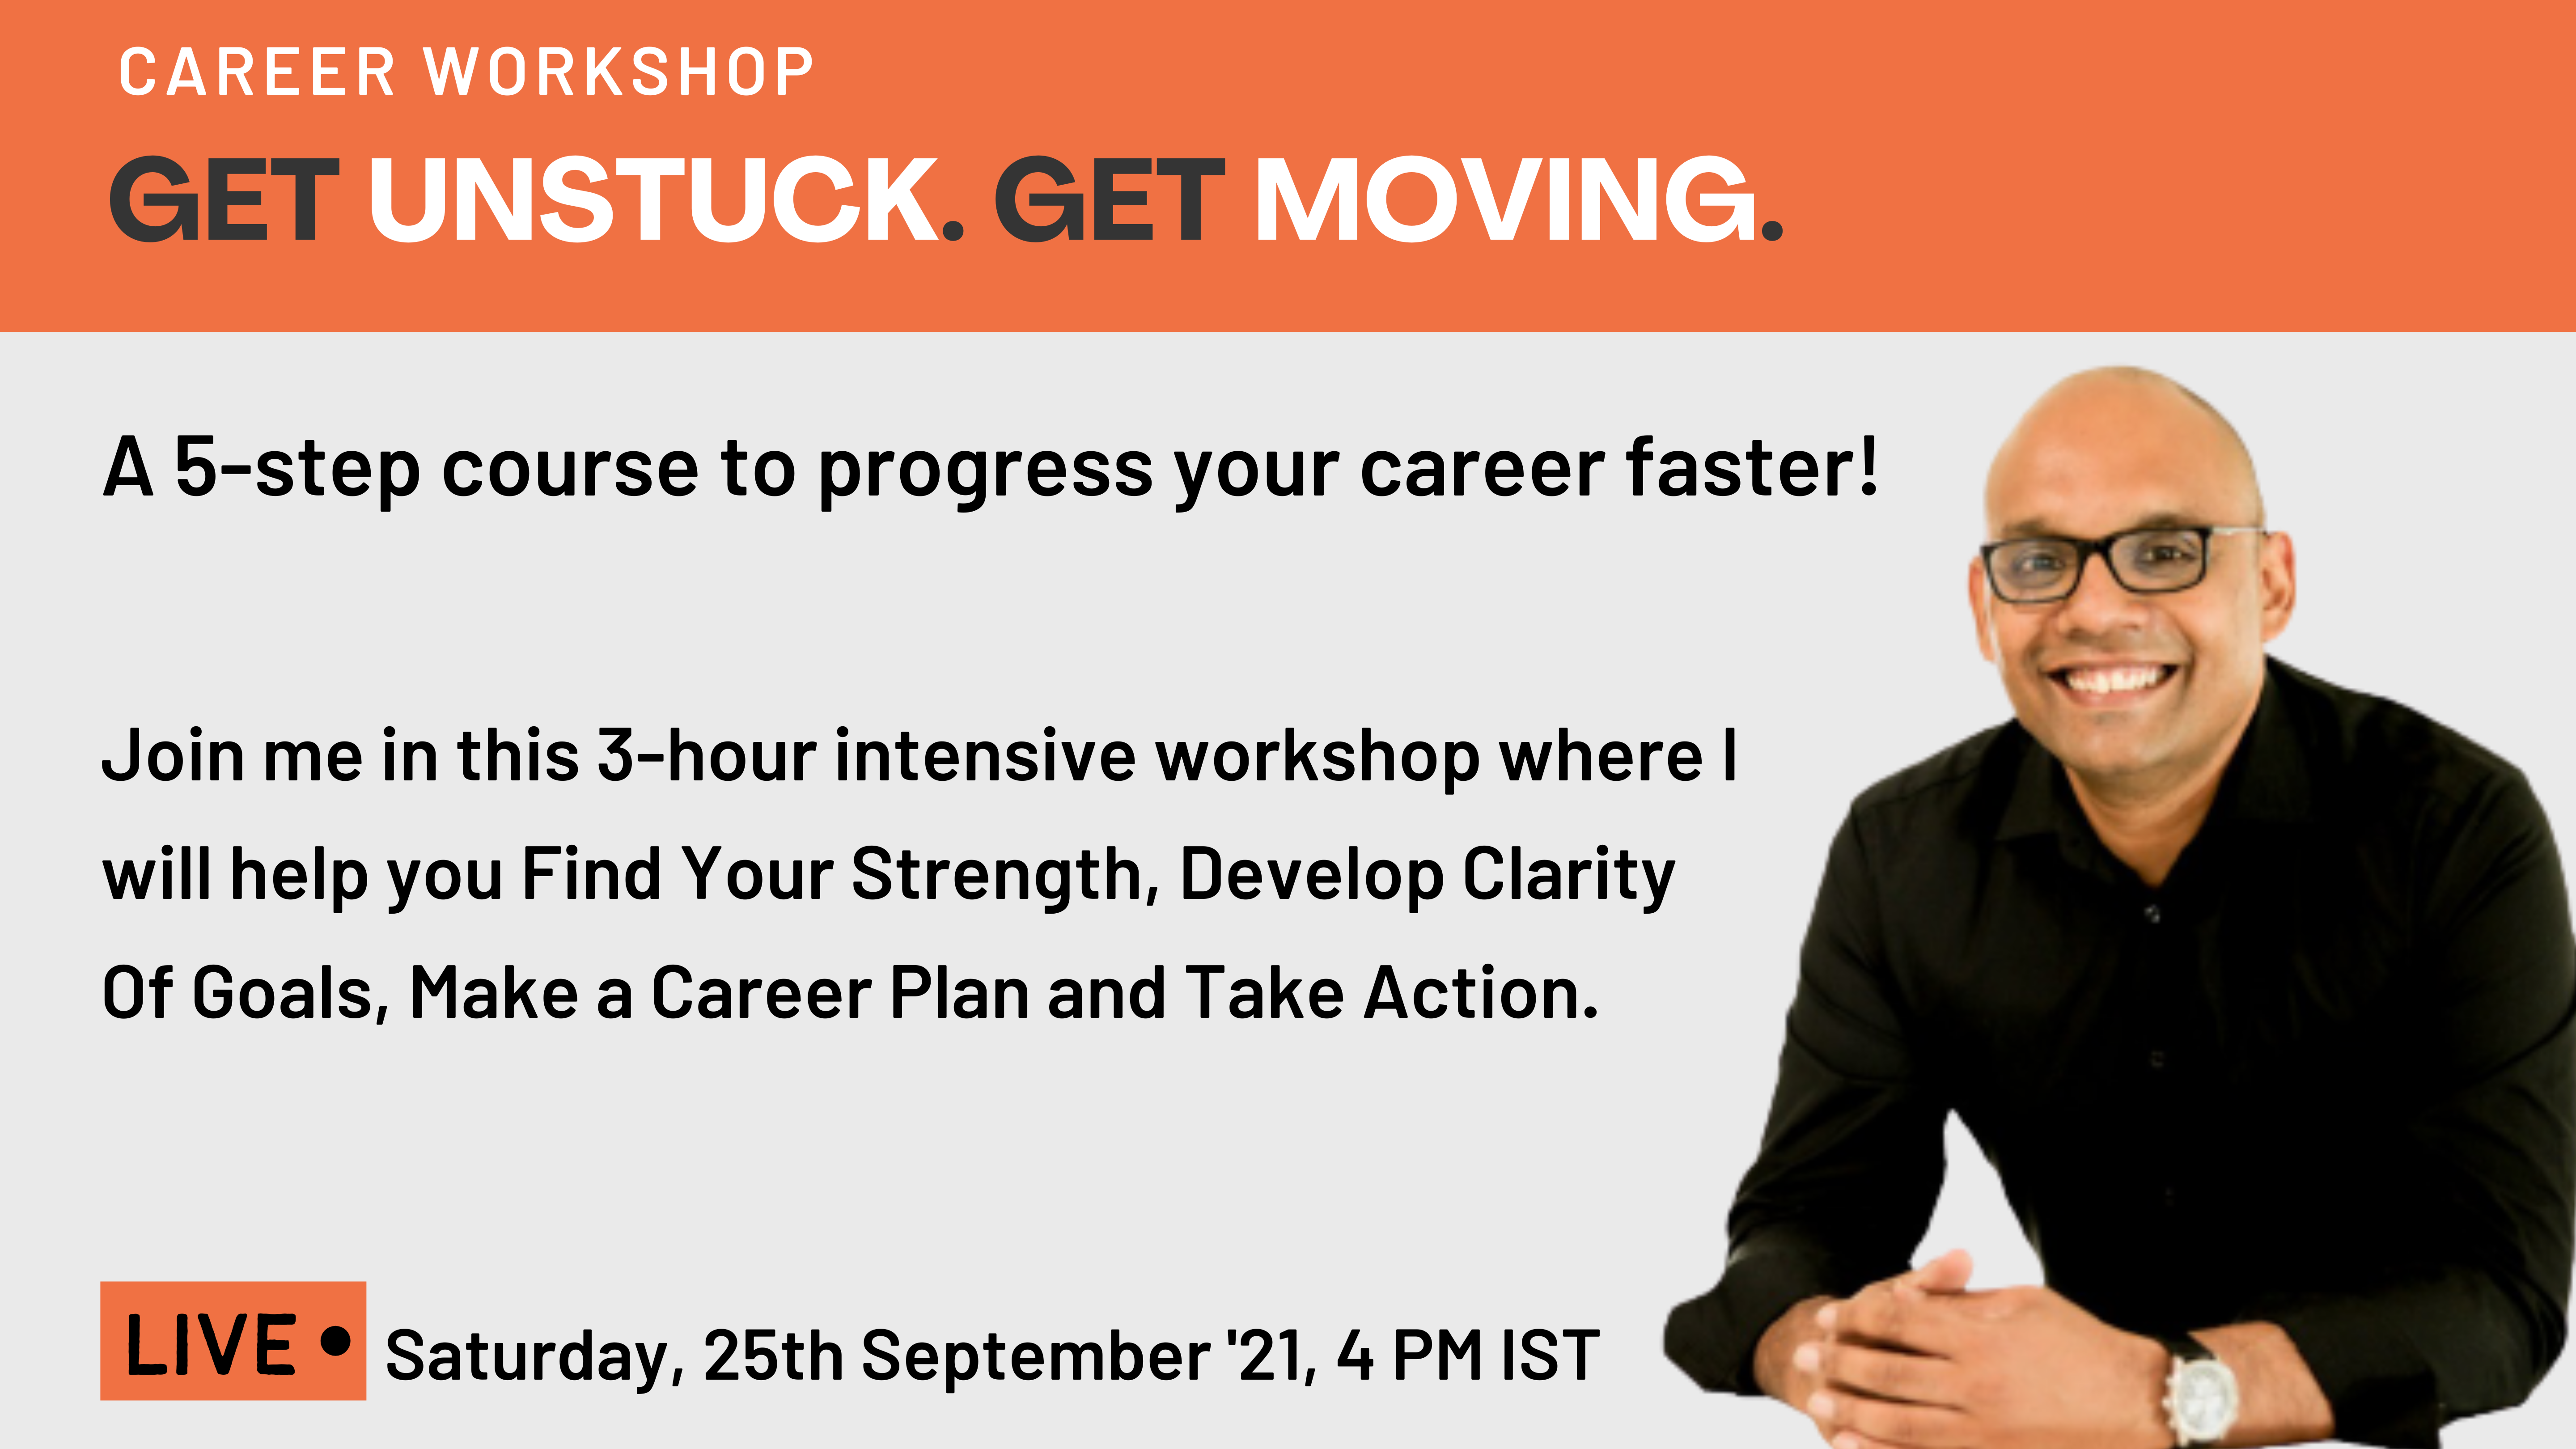 GET UNSTUCK. GET MOVING. A 5-STEP PLAN TO GET THE CAREER YOU WANT